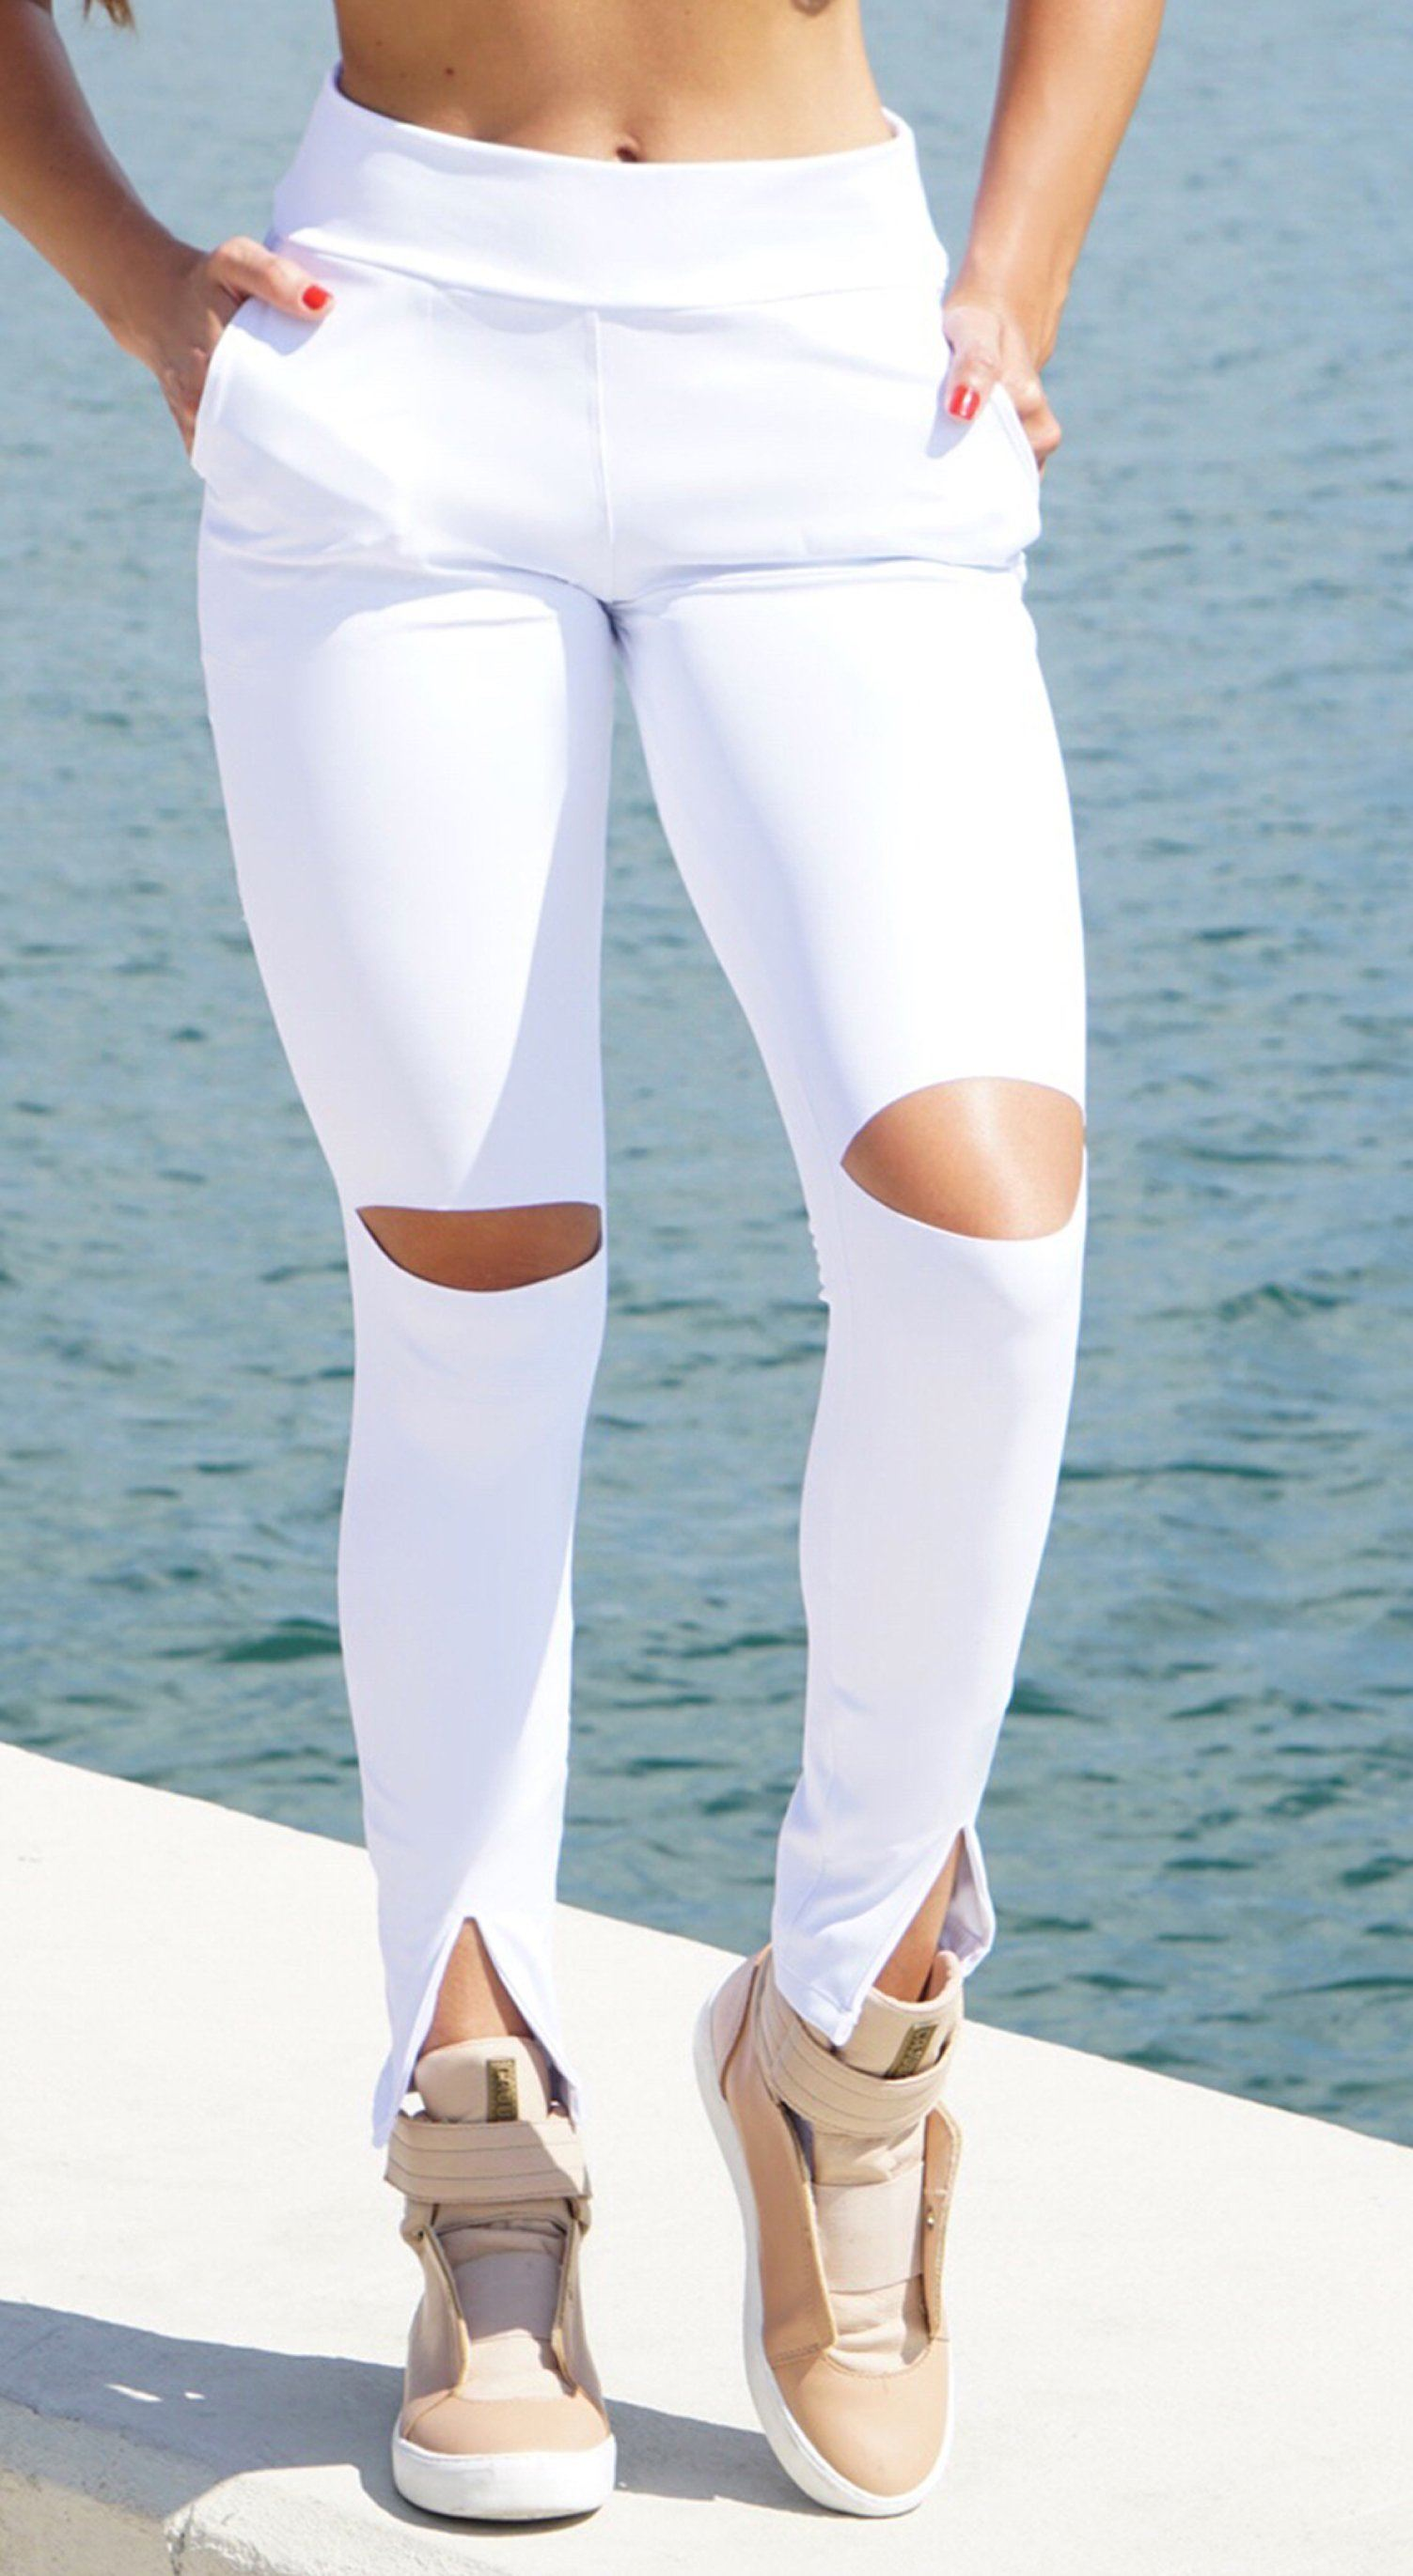 Brazilian Workout Legging - Stylish With Side Pockets White